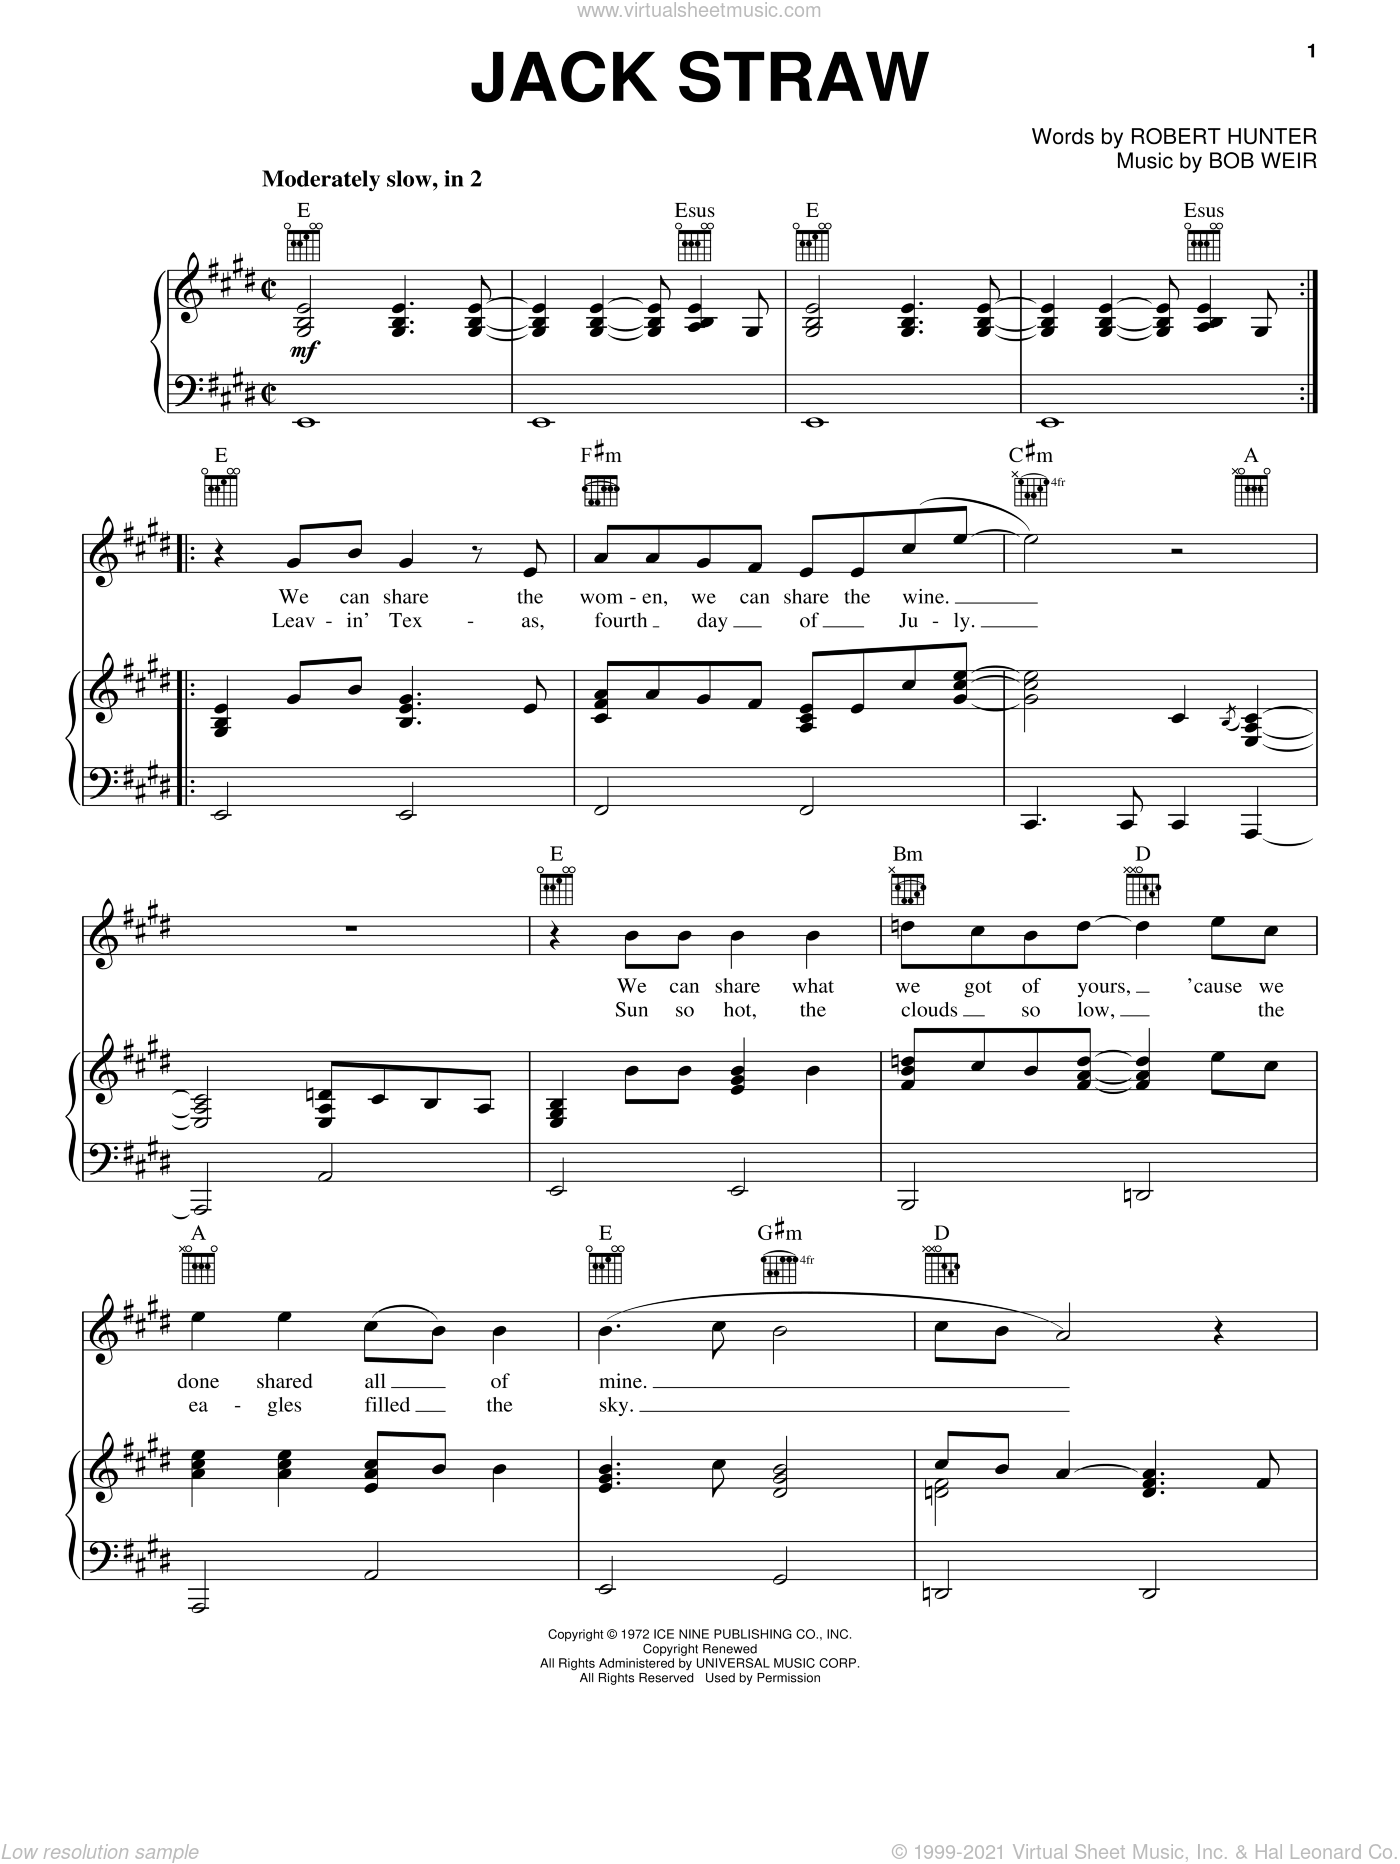 Jack Straw sheet music for voice, piano or guitar by Robert Hunter, Bob Weir and Grateful Dead. Score Image Preview.